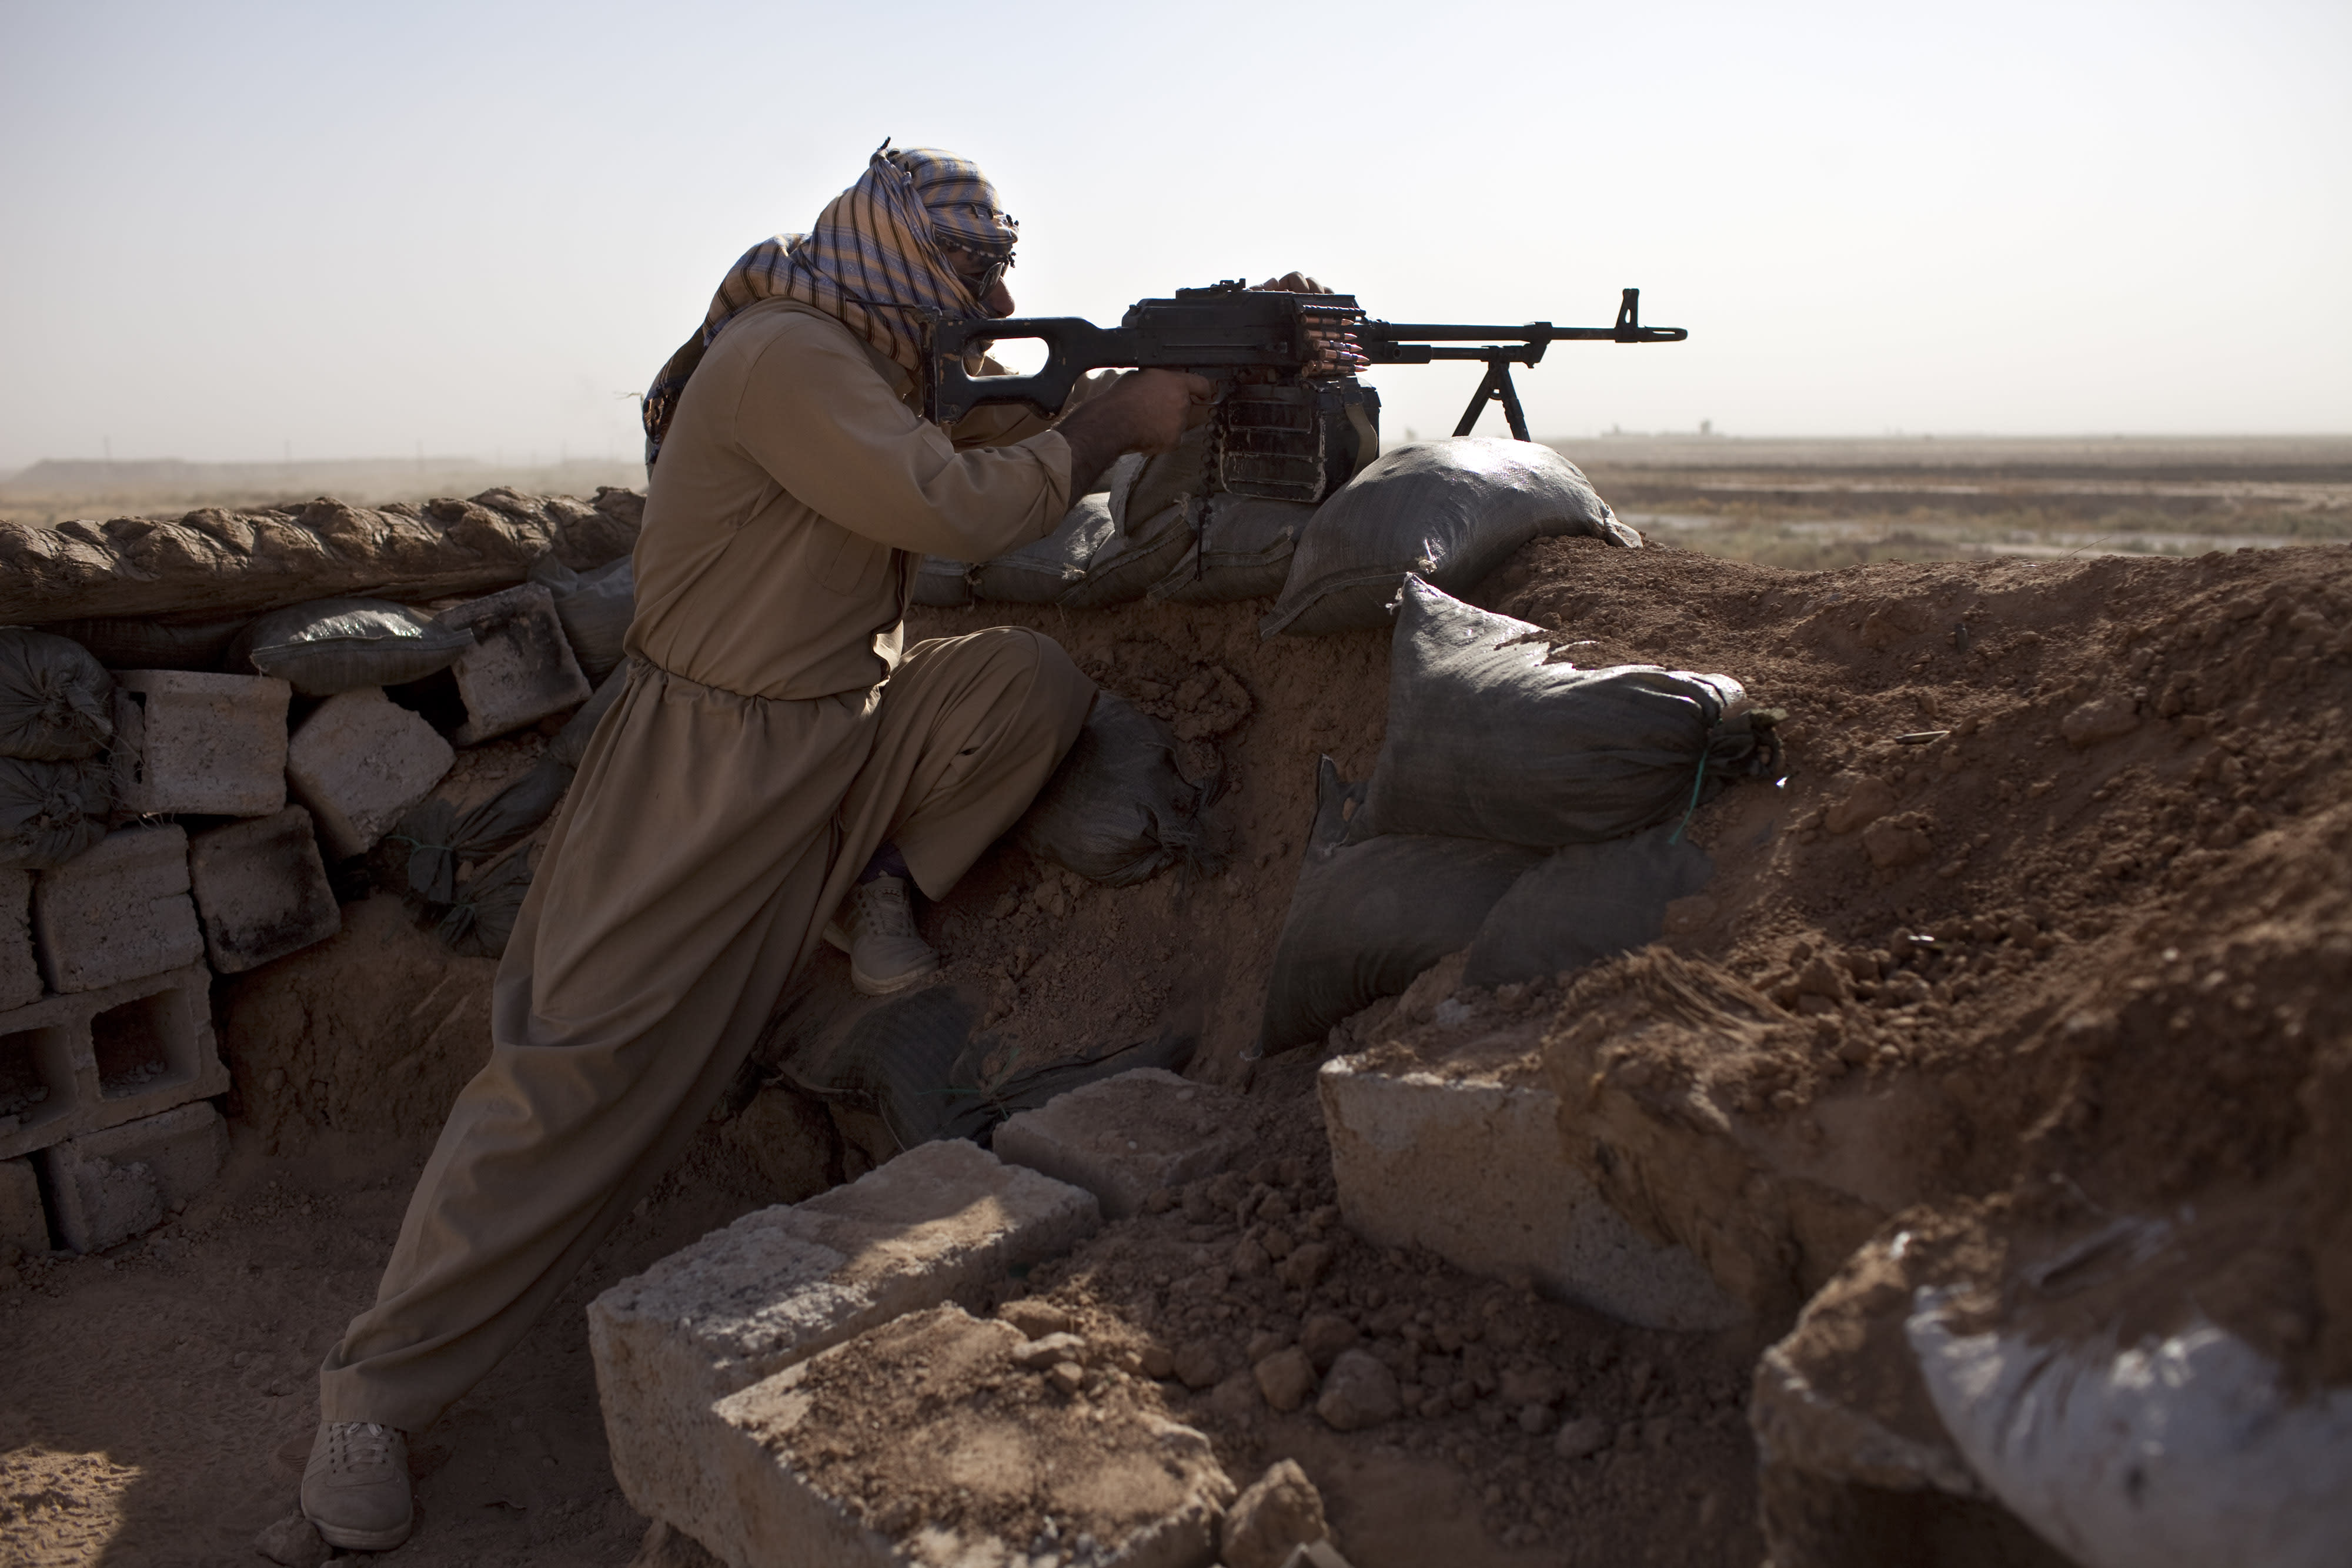 A Kurdish Peshmerga fighter guards the frontline during clashes against Islamic State (IS) militants in Yangije, on September 11, 2014 (AFP Photo/JM Lopez)